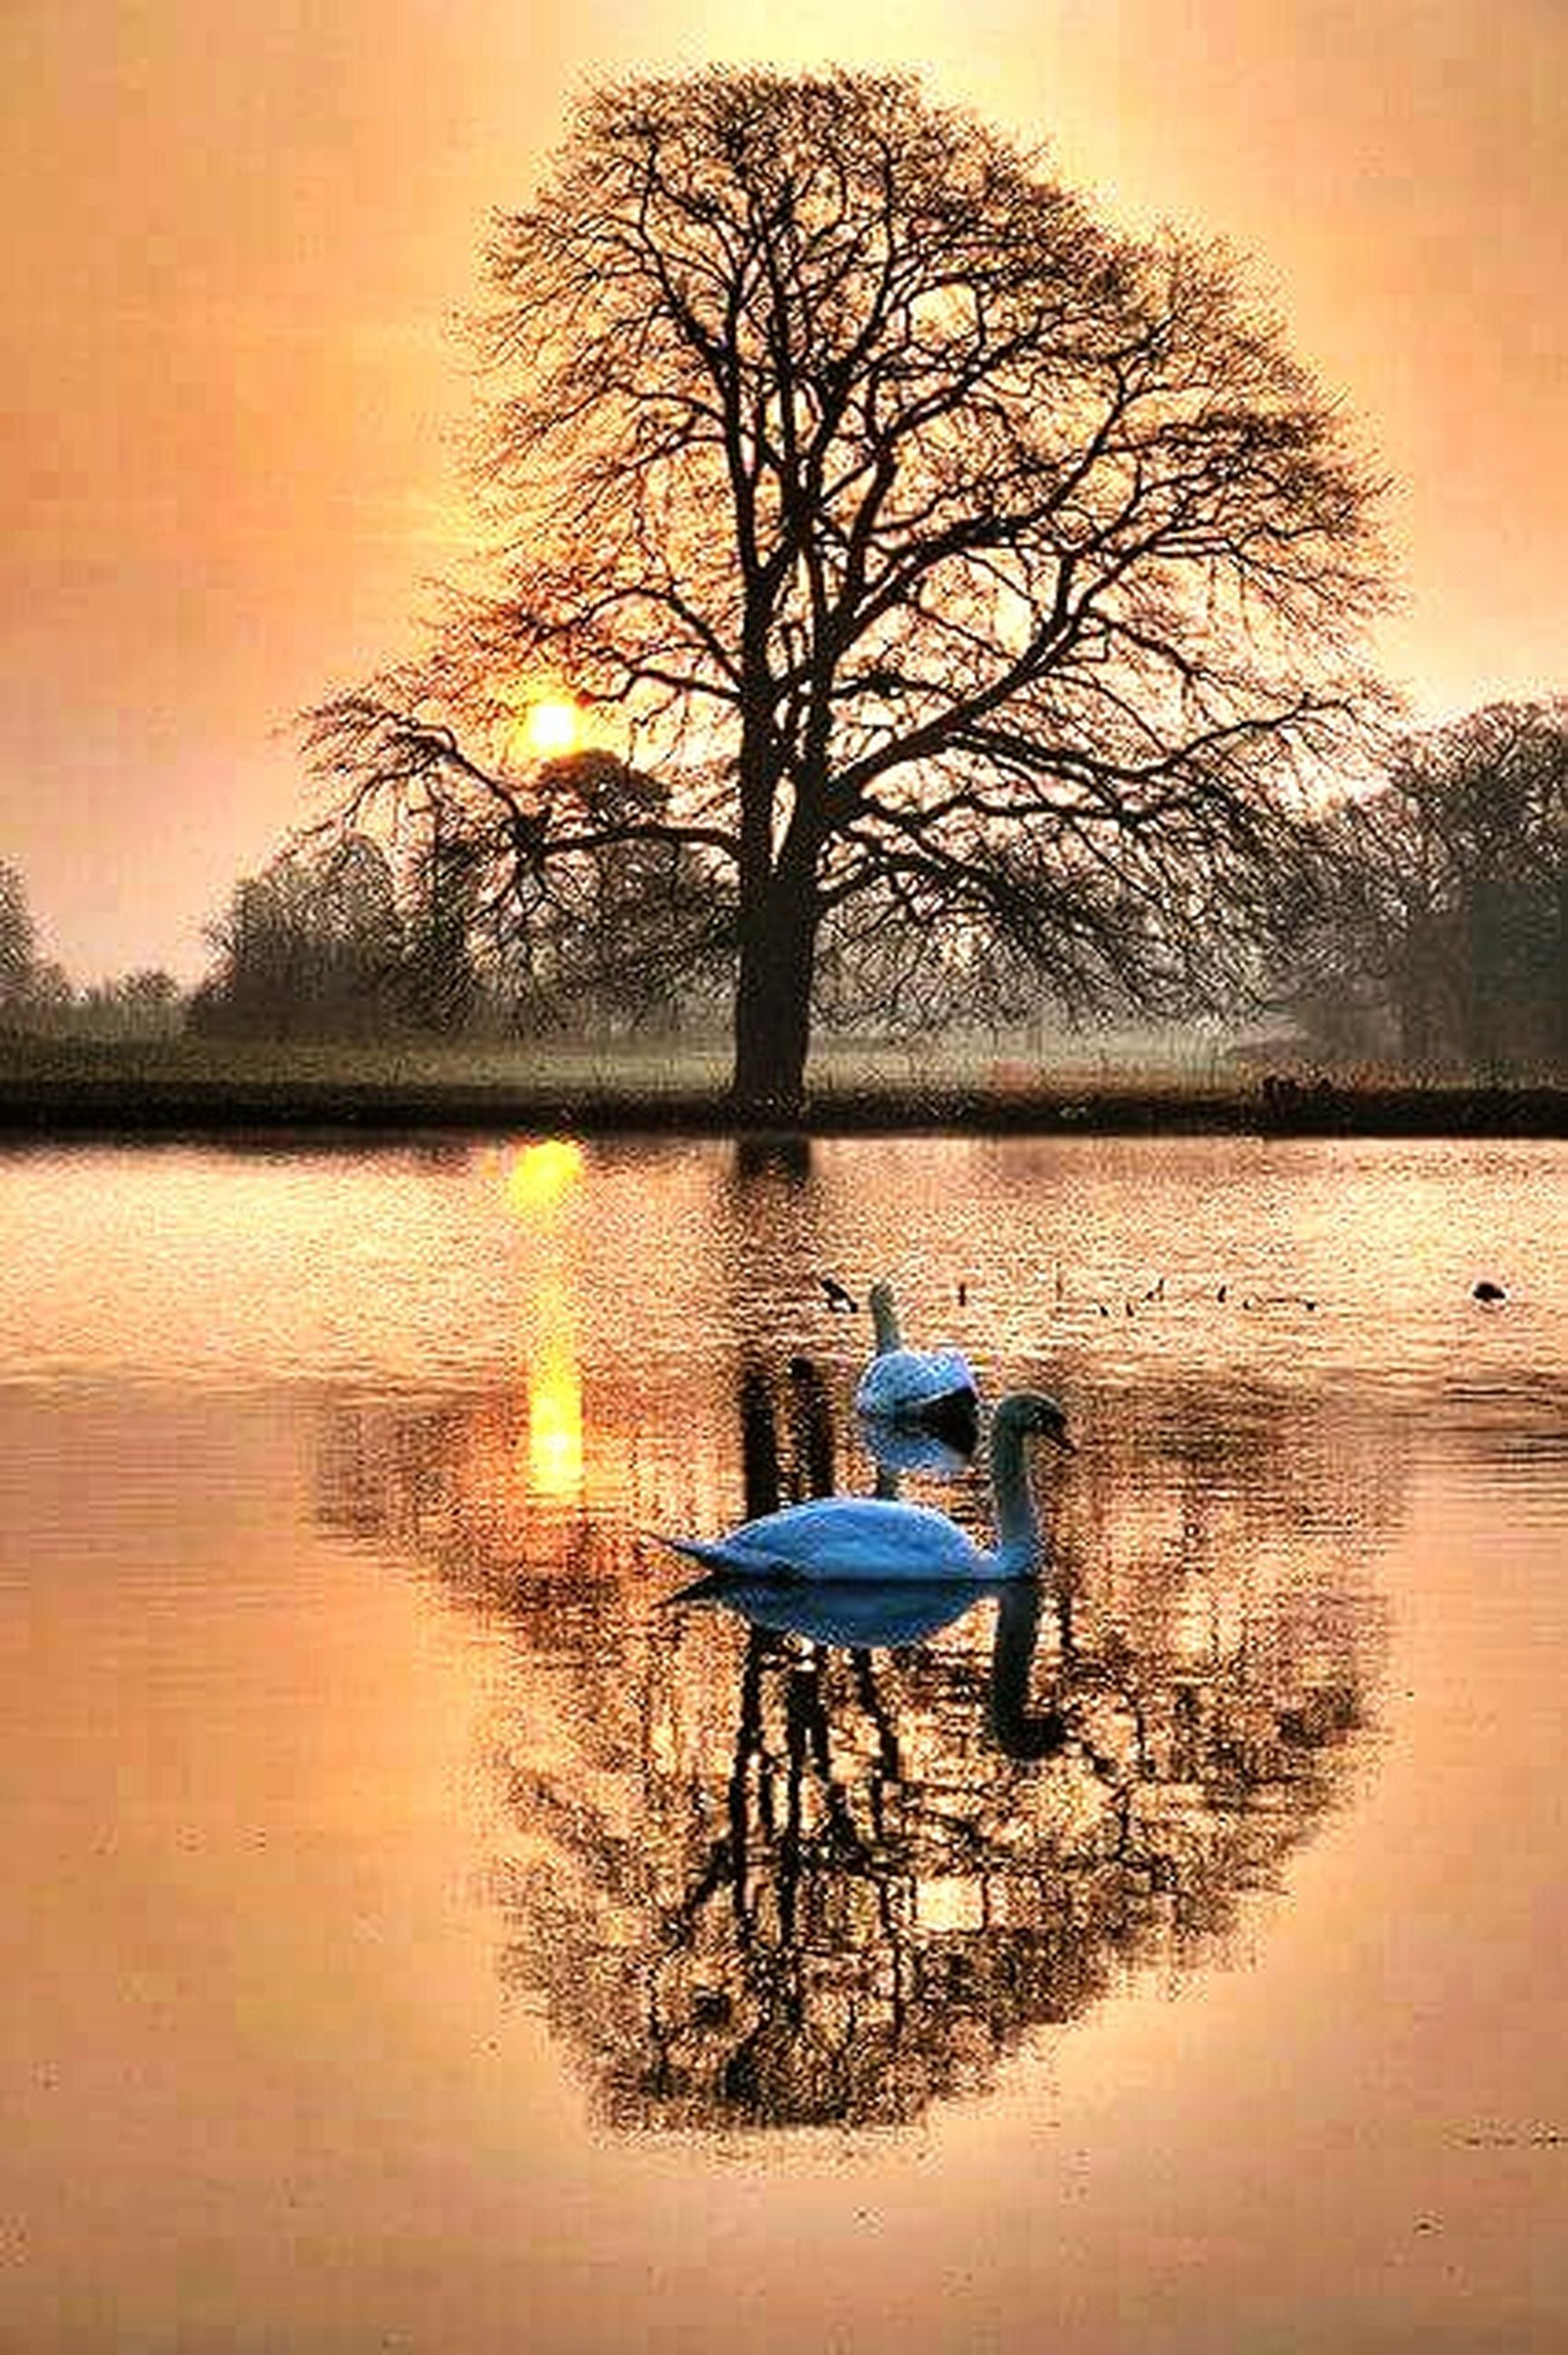 water, sunset, tree, tranquil scene, reflection, tranquility, lake, silhouette, scenics, bare tree, nature, beauty in nature, sun, branch, sky, nautical vessel, boat, idyllic, transportation, orange color